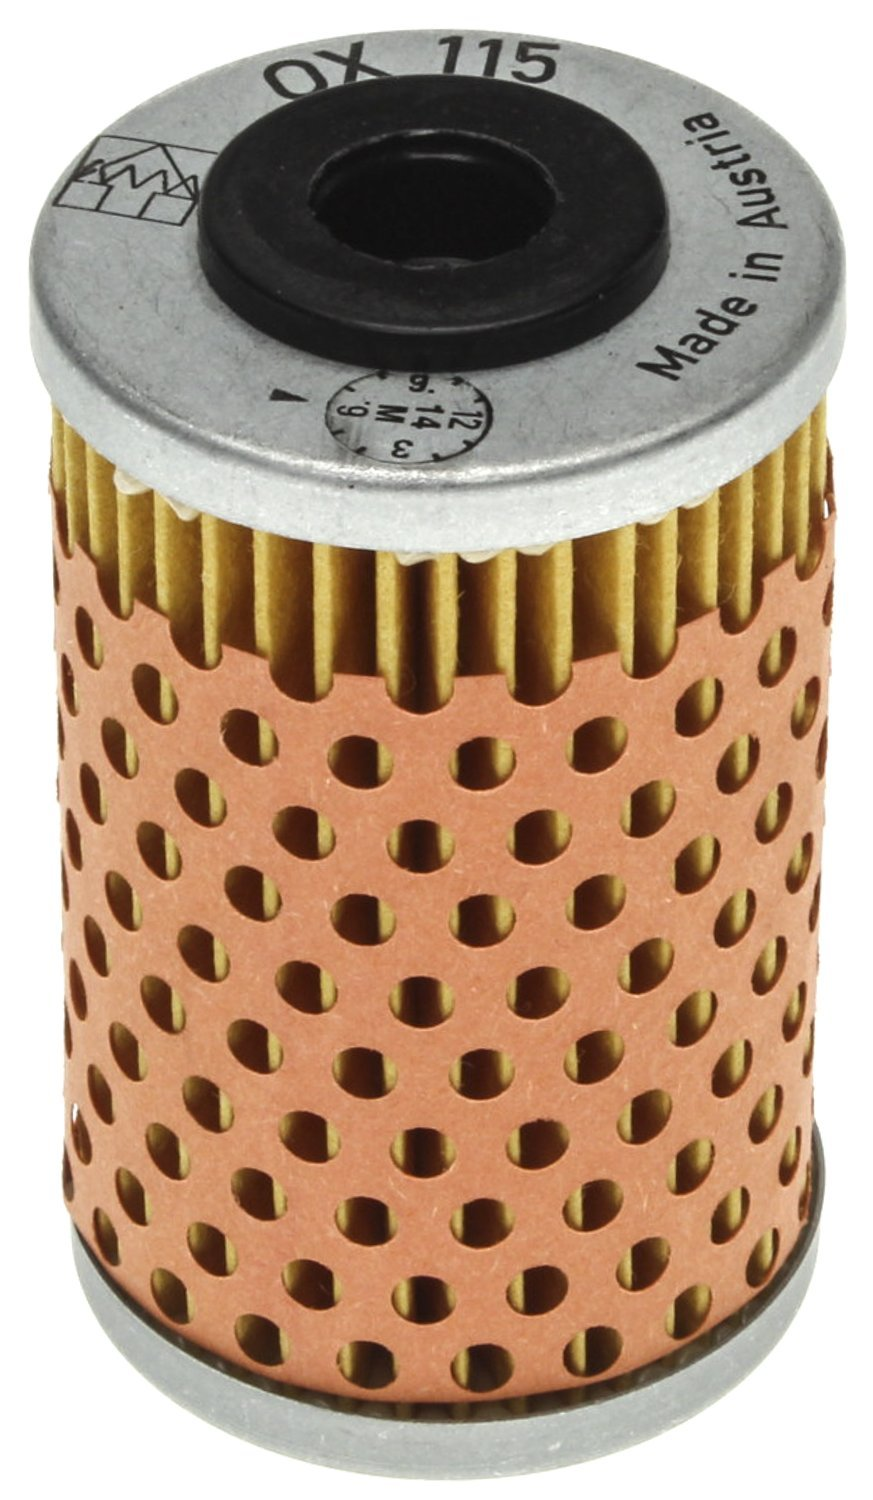 MAHLE Original OX 115 Engine Oil Filter